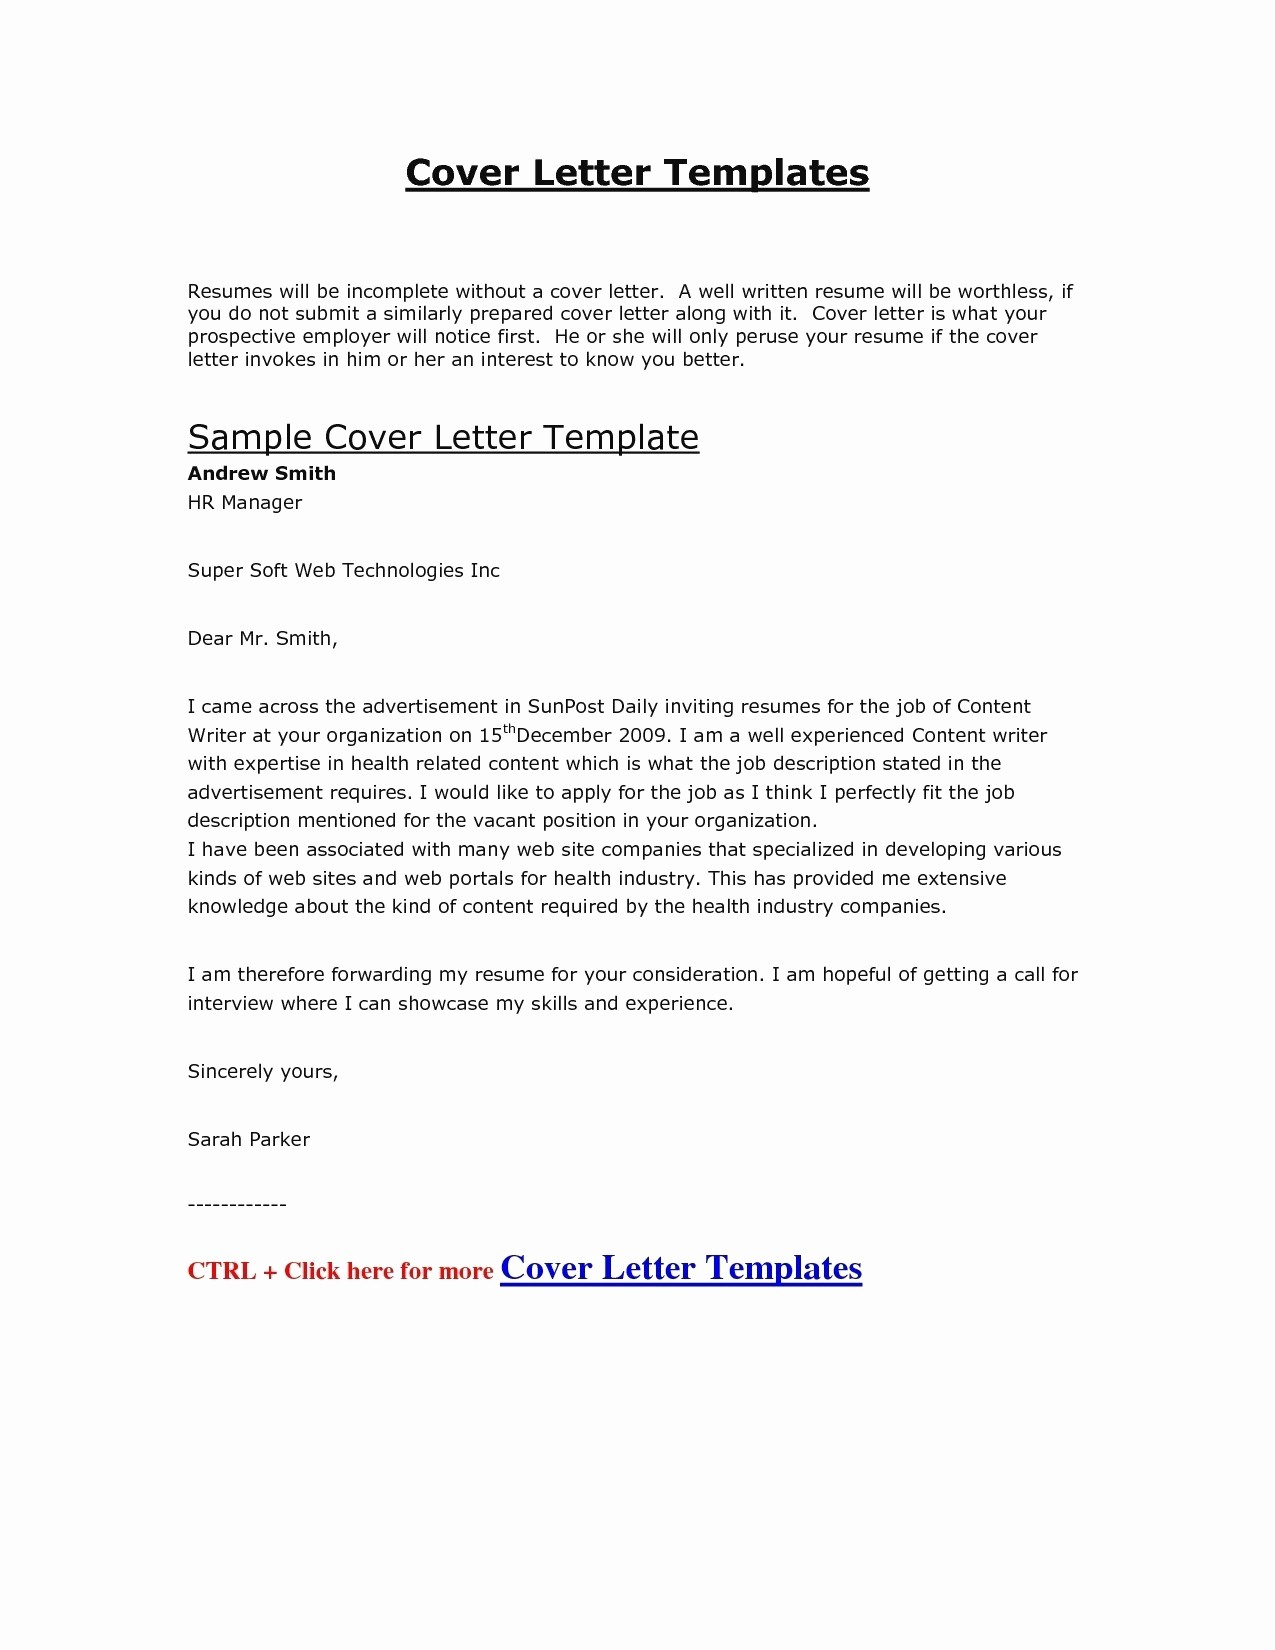 Cv Cover Letter Template - Job Application Letter format Template Copy Cover Letter Template Hr